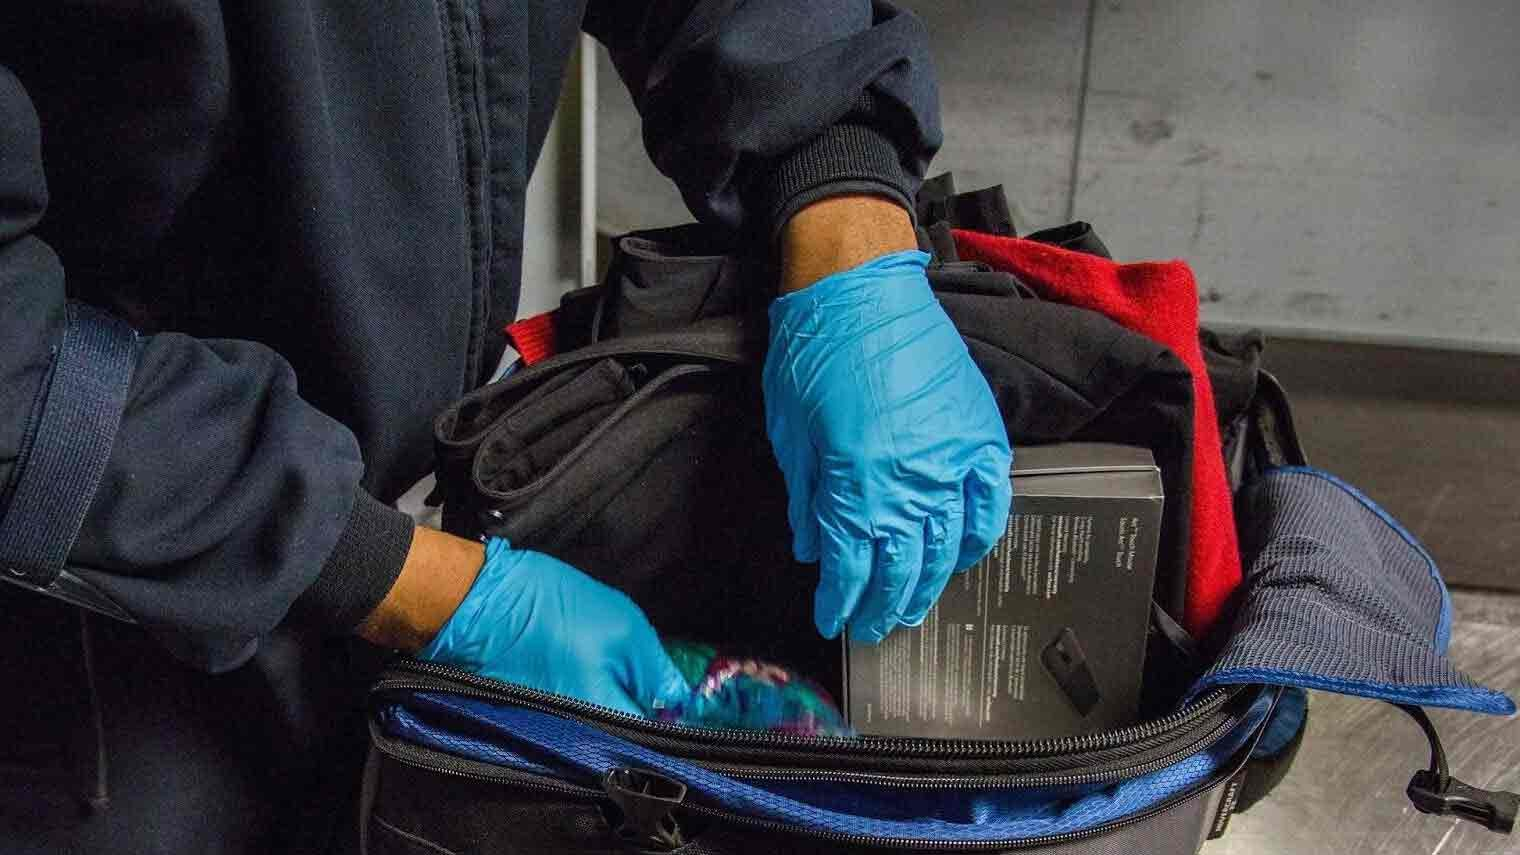 TSA agent examining the contents of a carry on bag